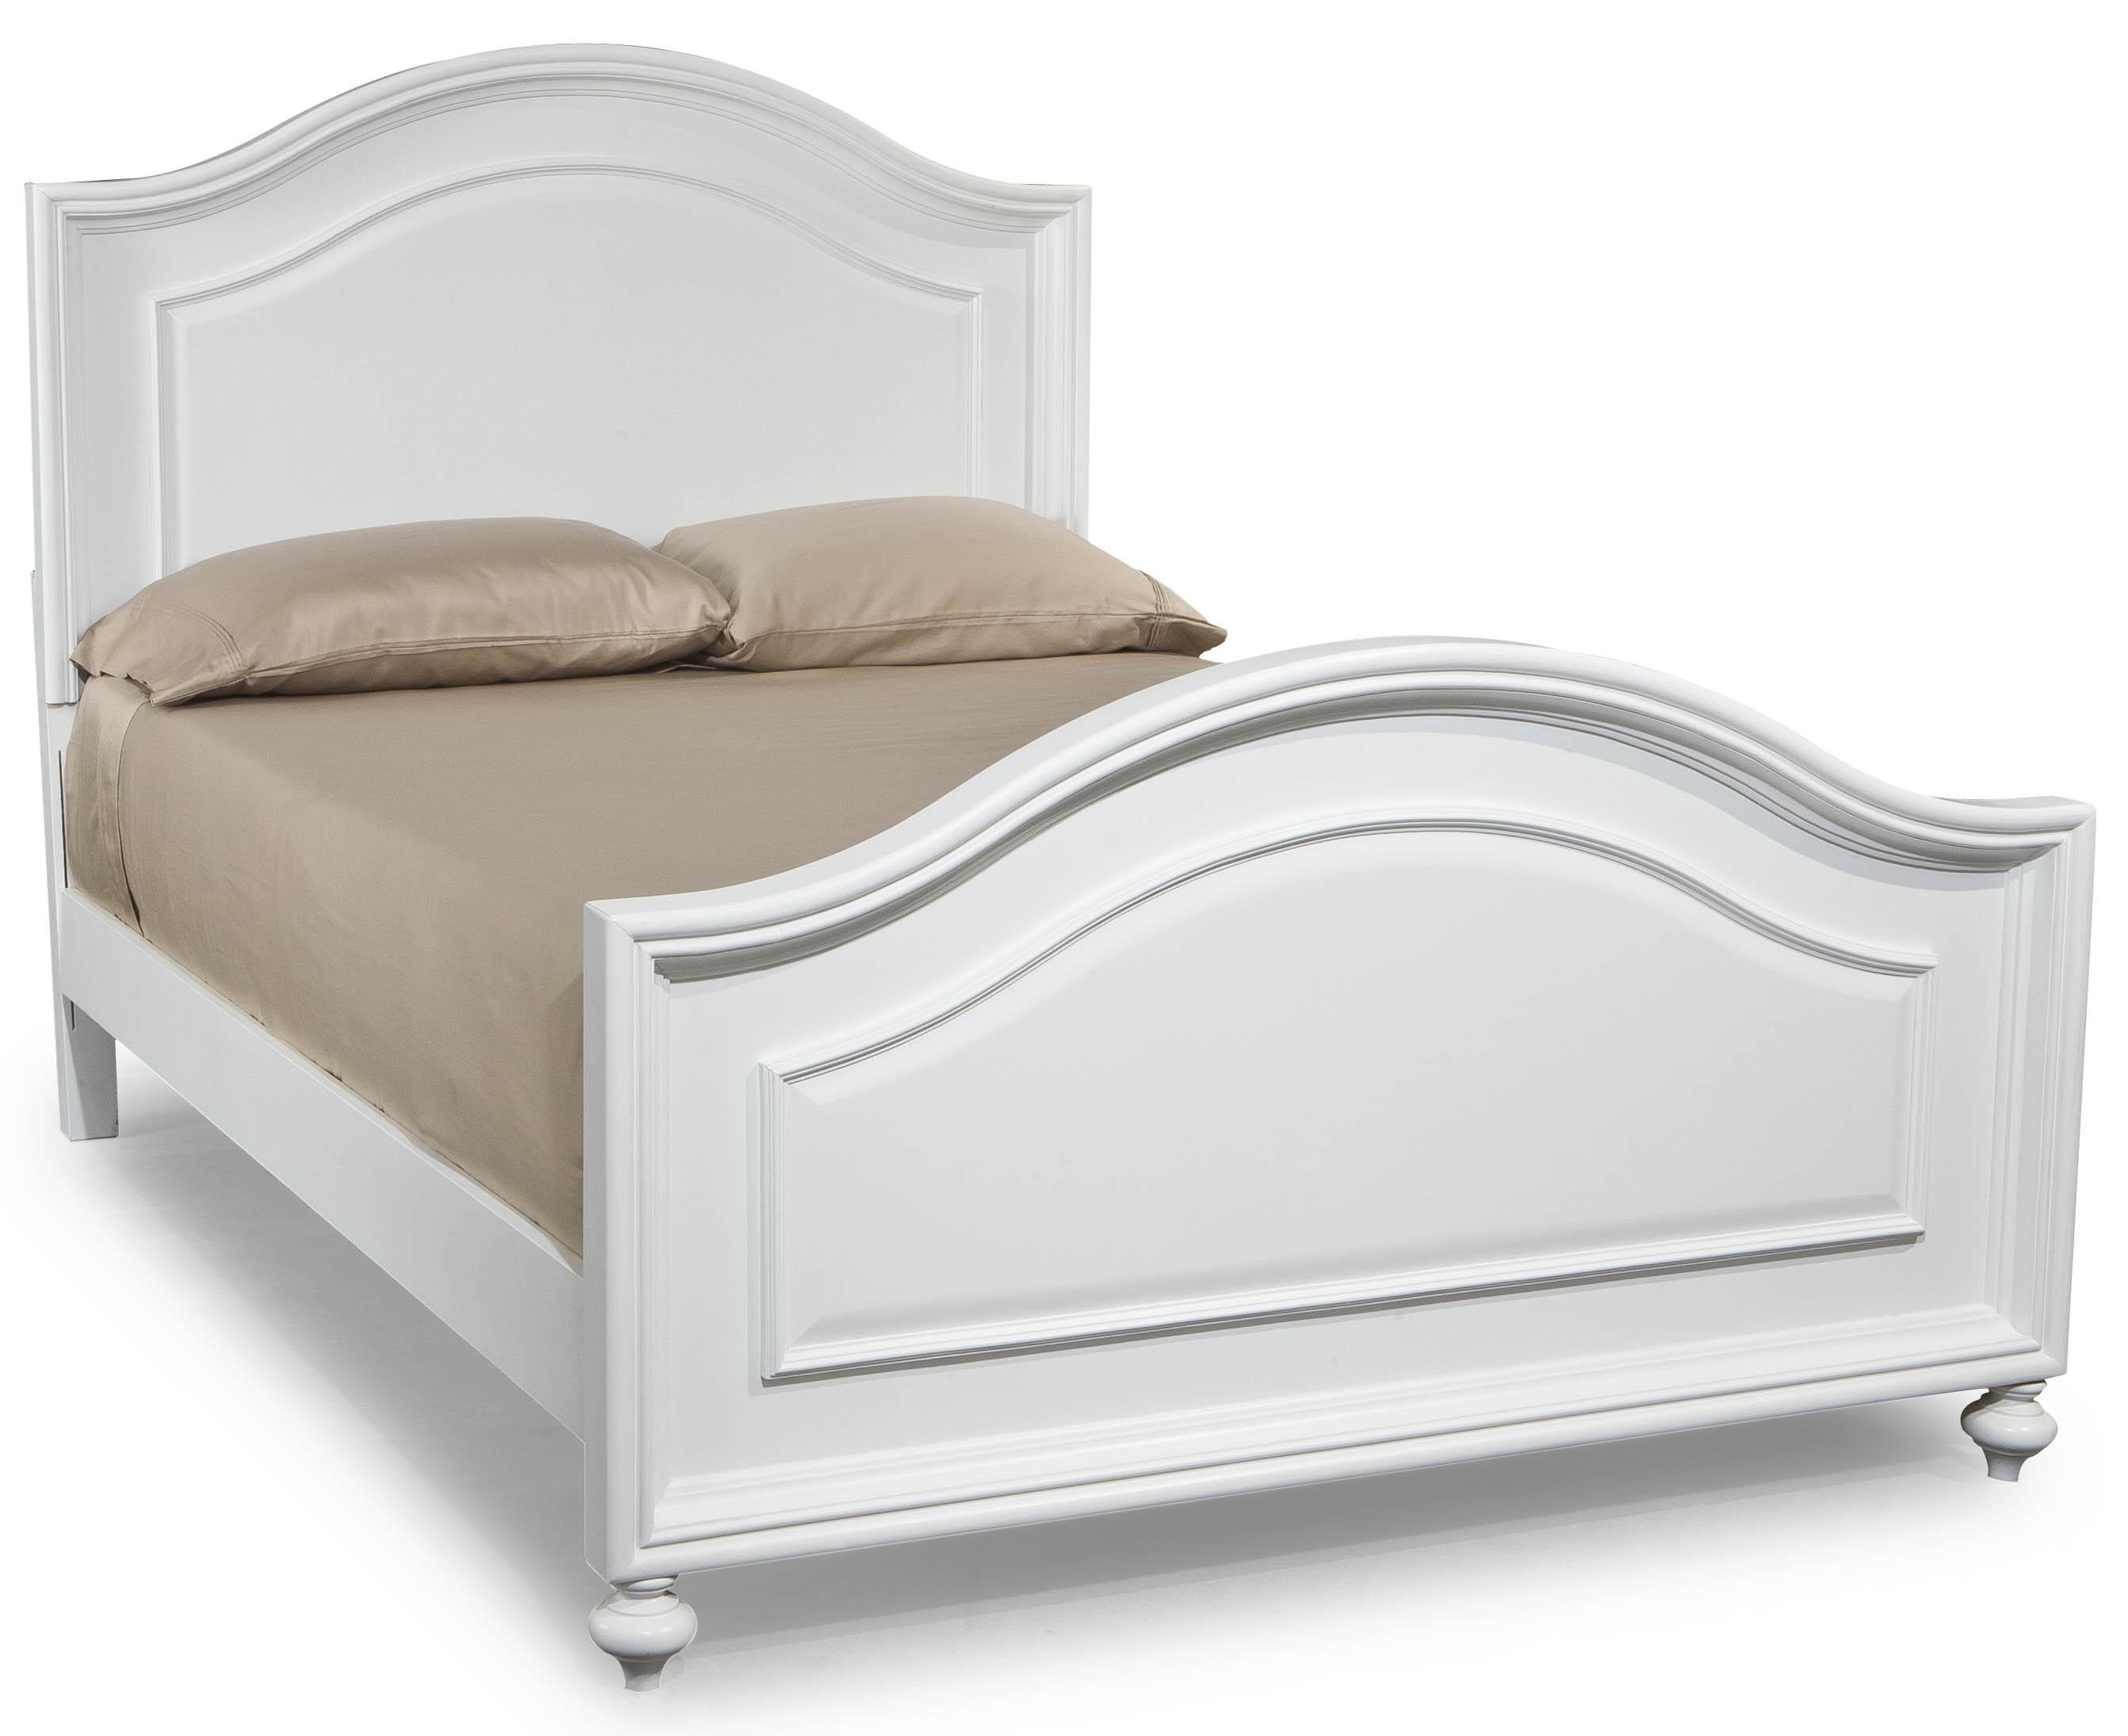 legacy classic kids madison full size arched panel headboard johnny janosik headboards. Black Bedroom Furniture Sets. Home Design Ideas